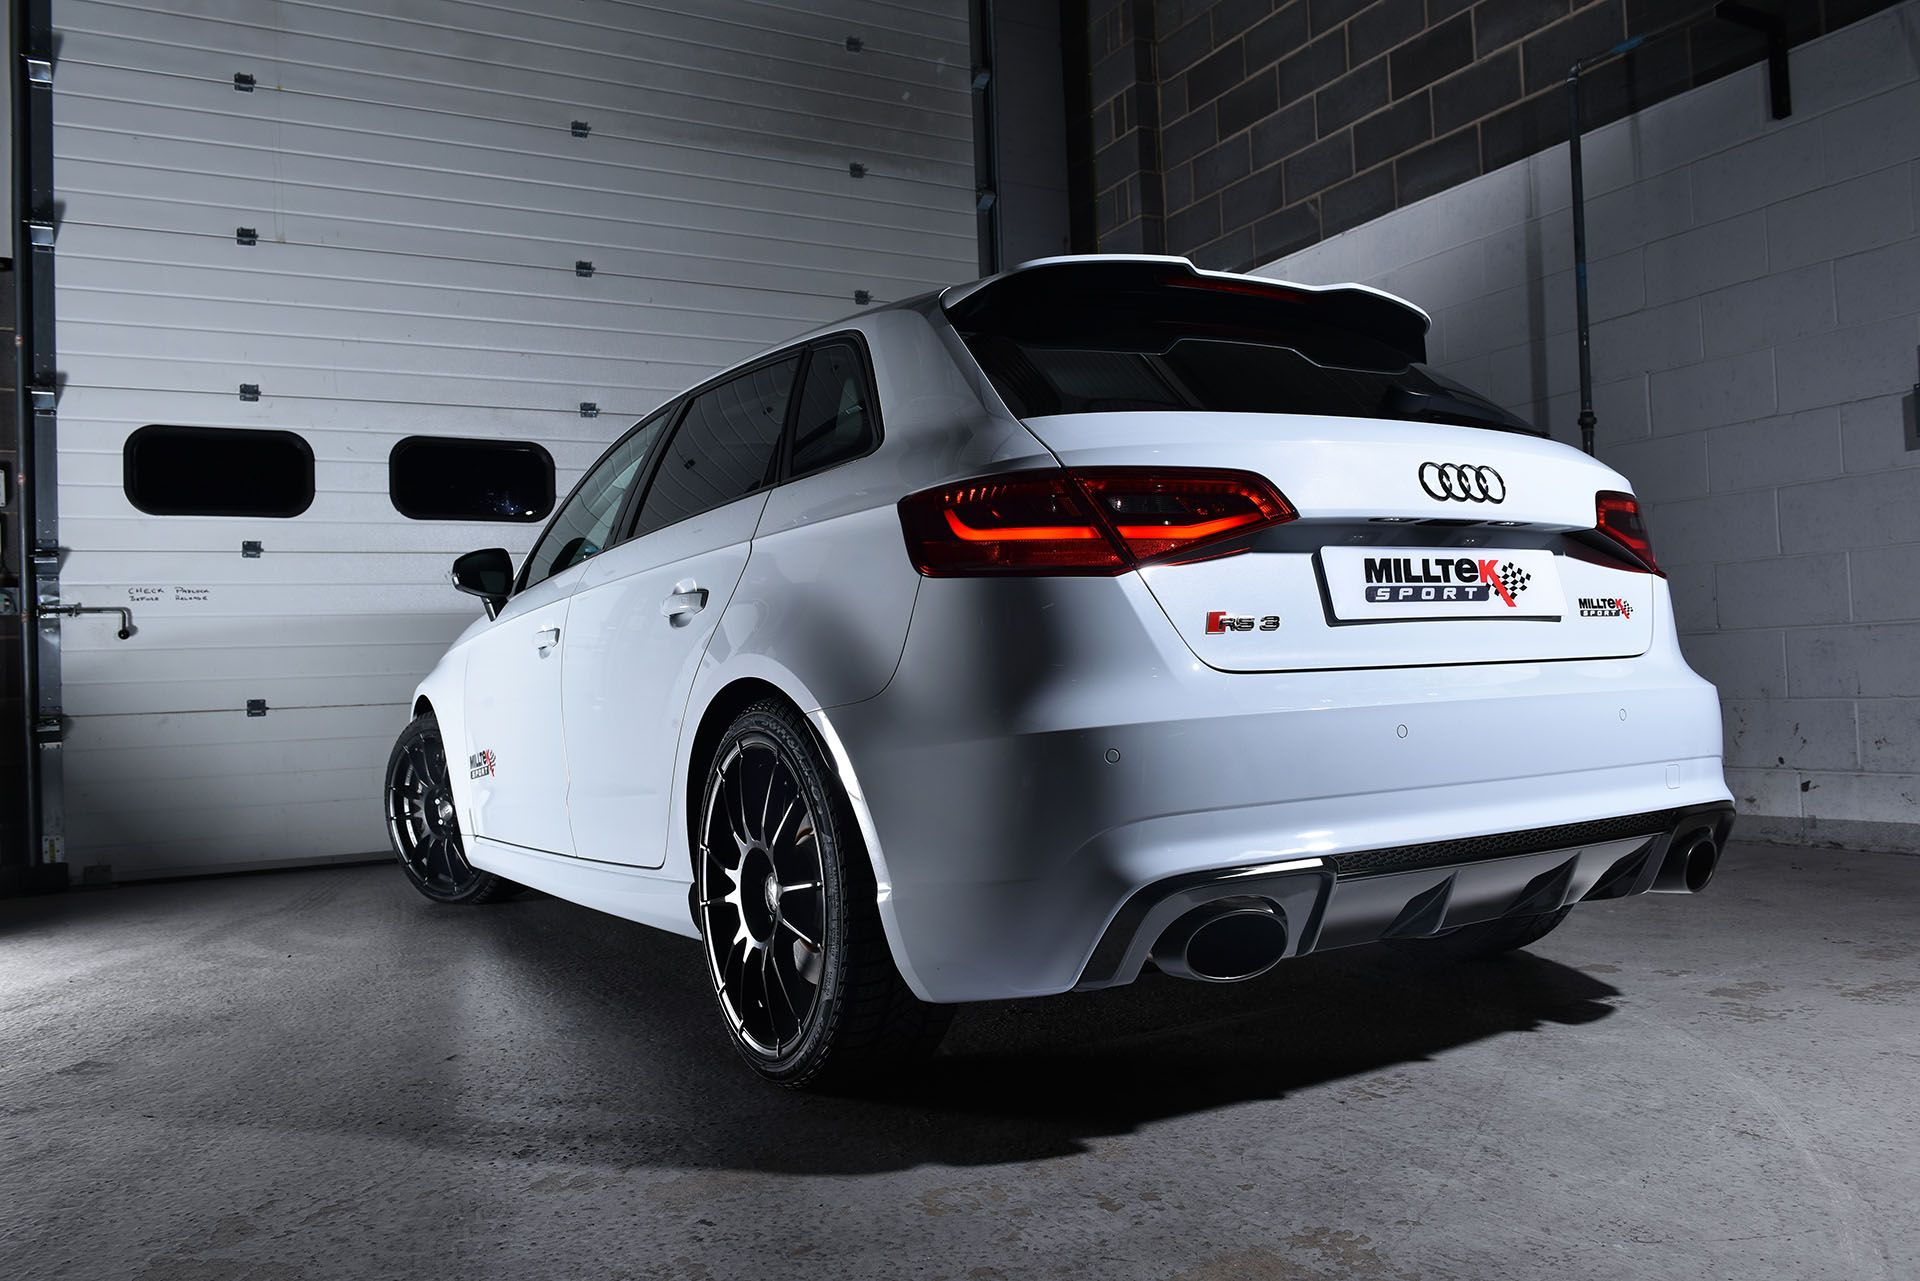 Milltek Sport Performance Exhaust Systems for the Audi RS3 Sportback